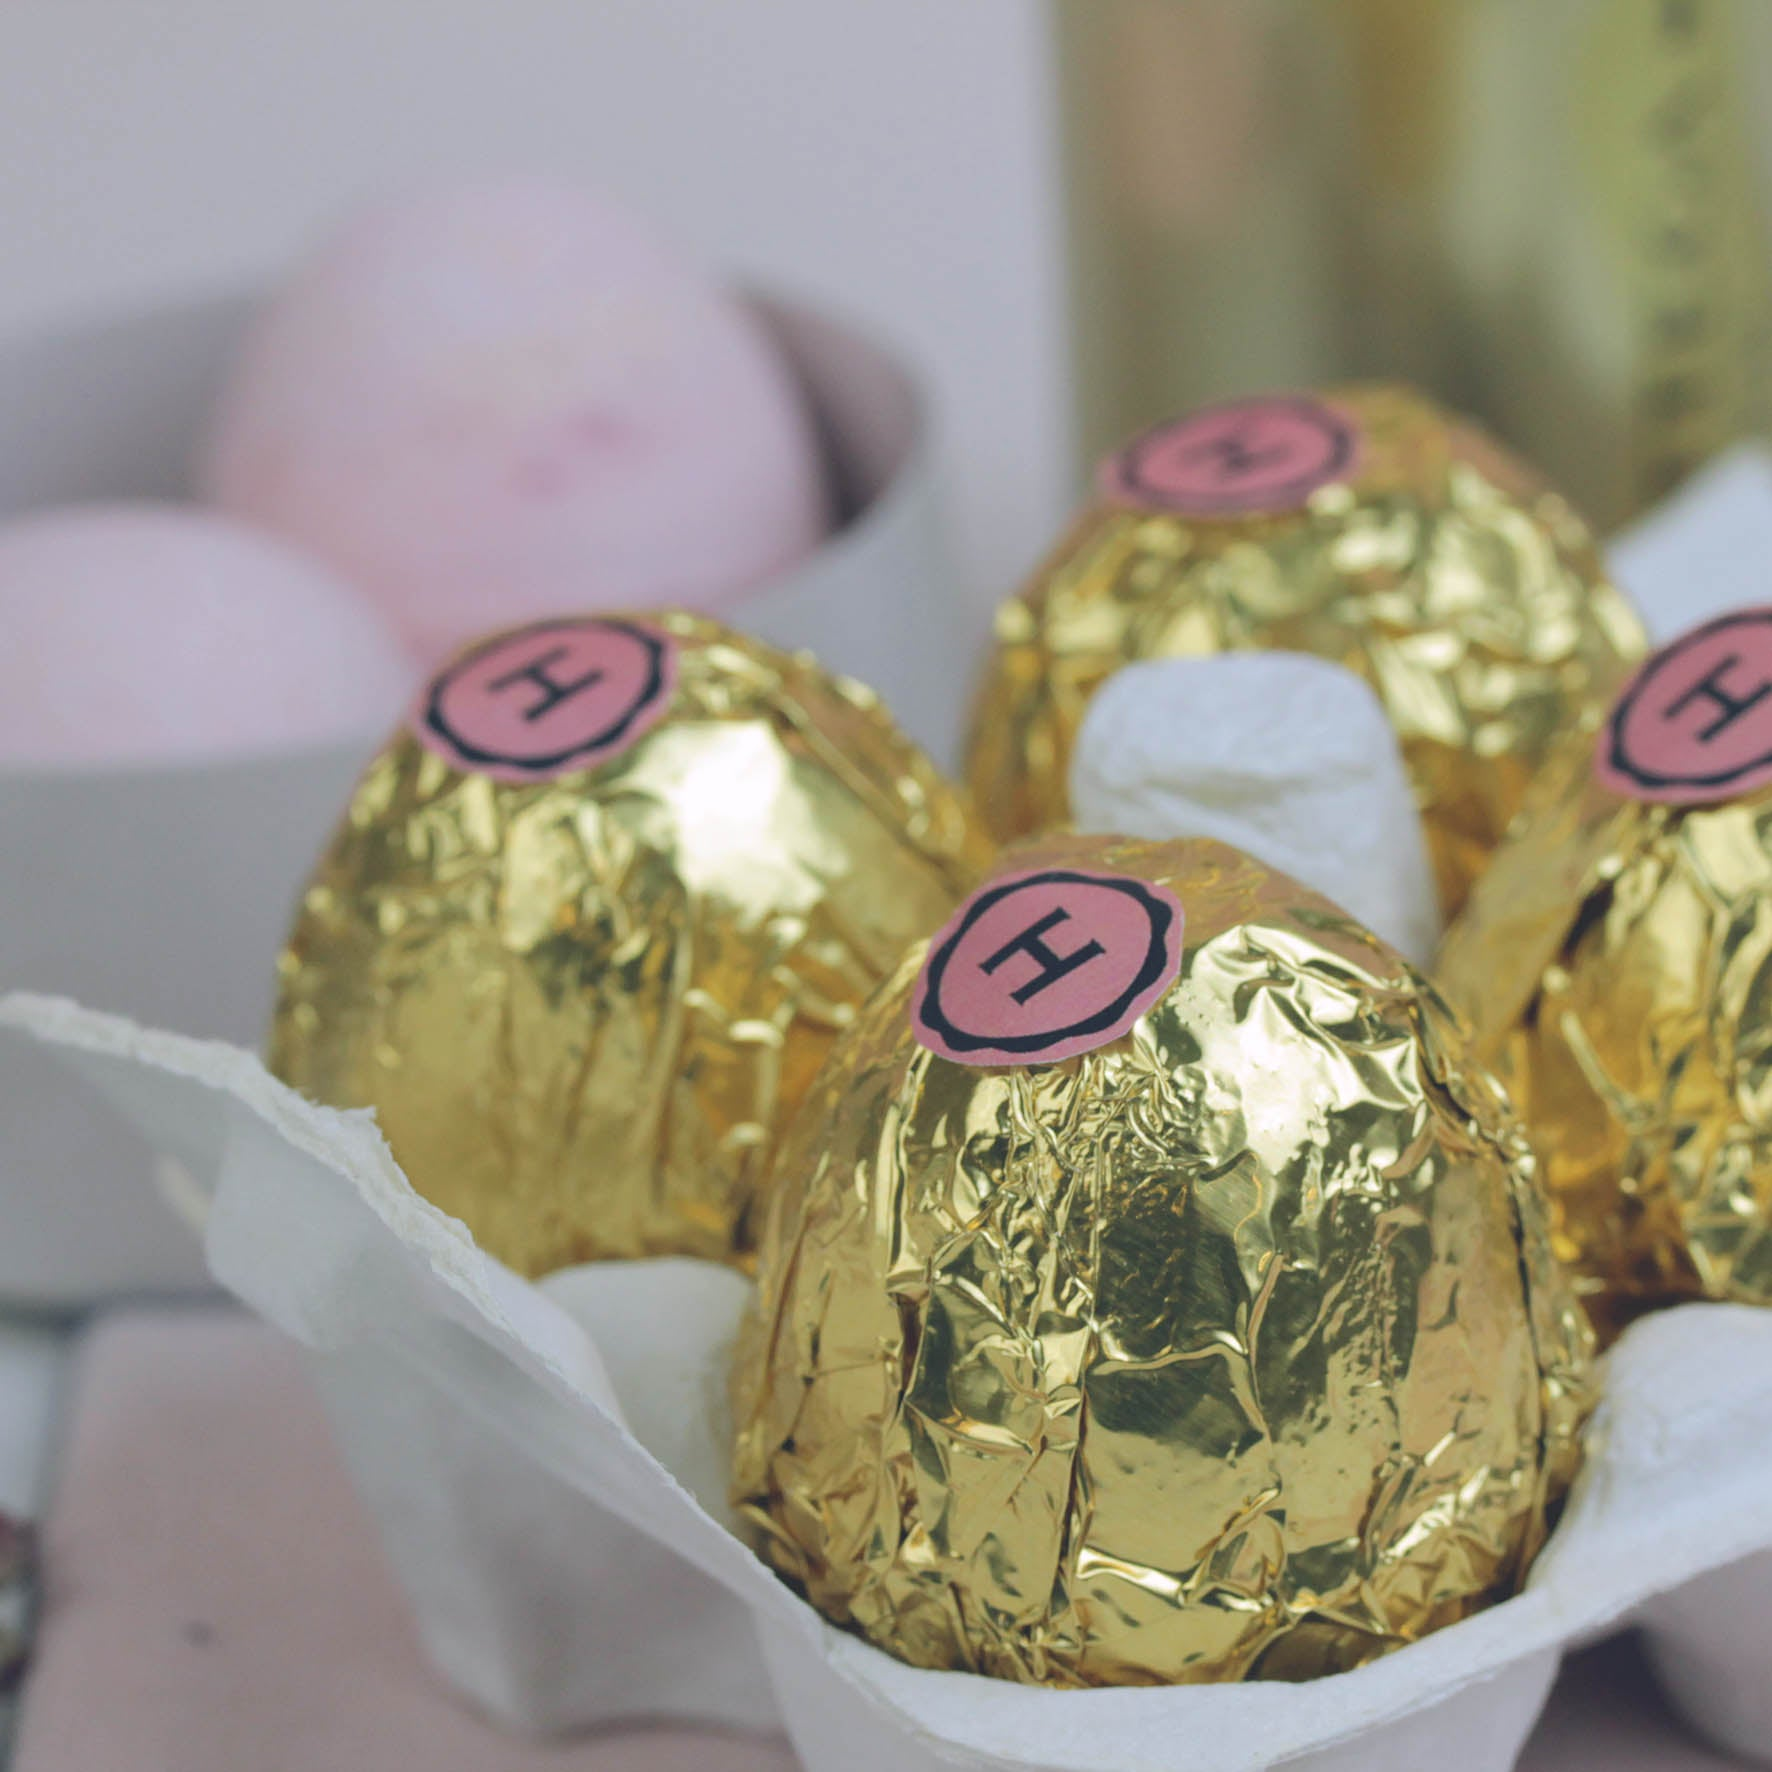 Prosecco Easter Egg Bath Bombs in Egg Box